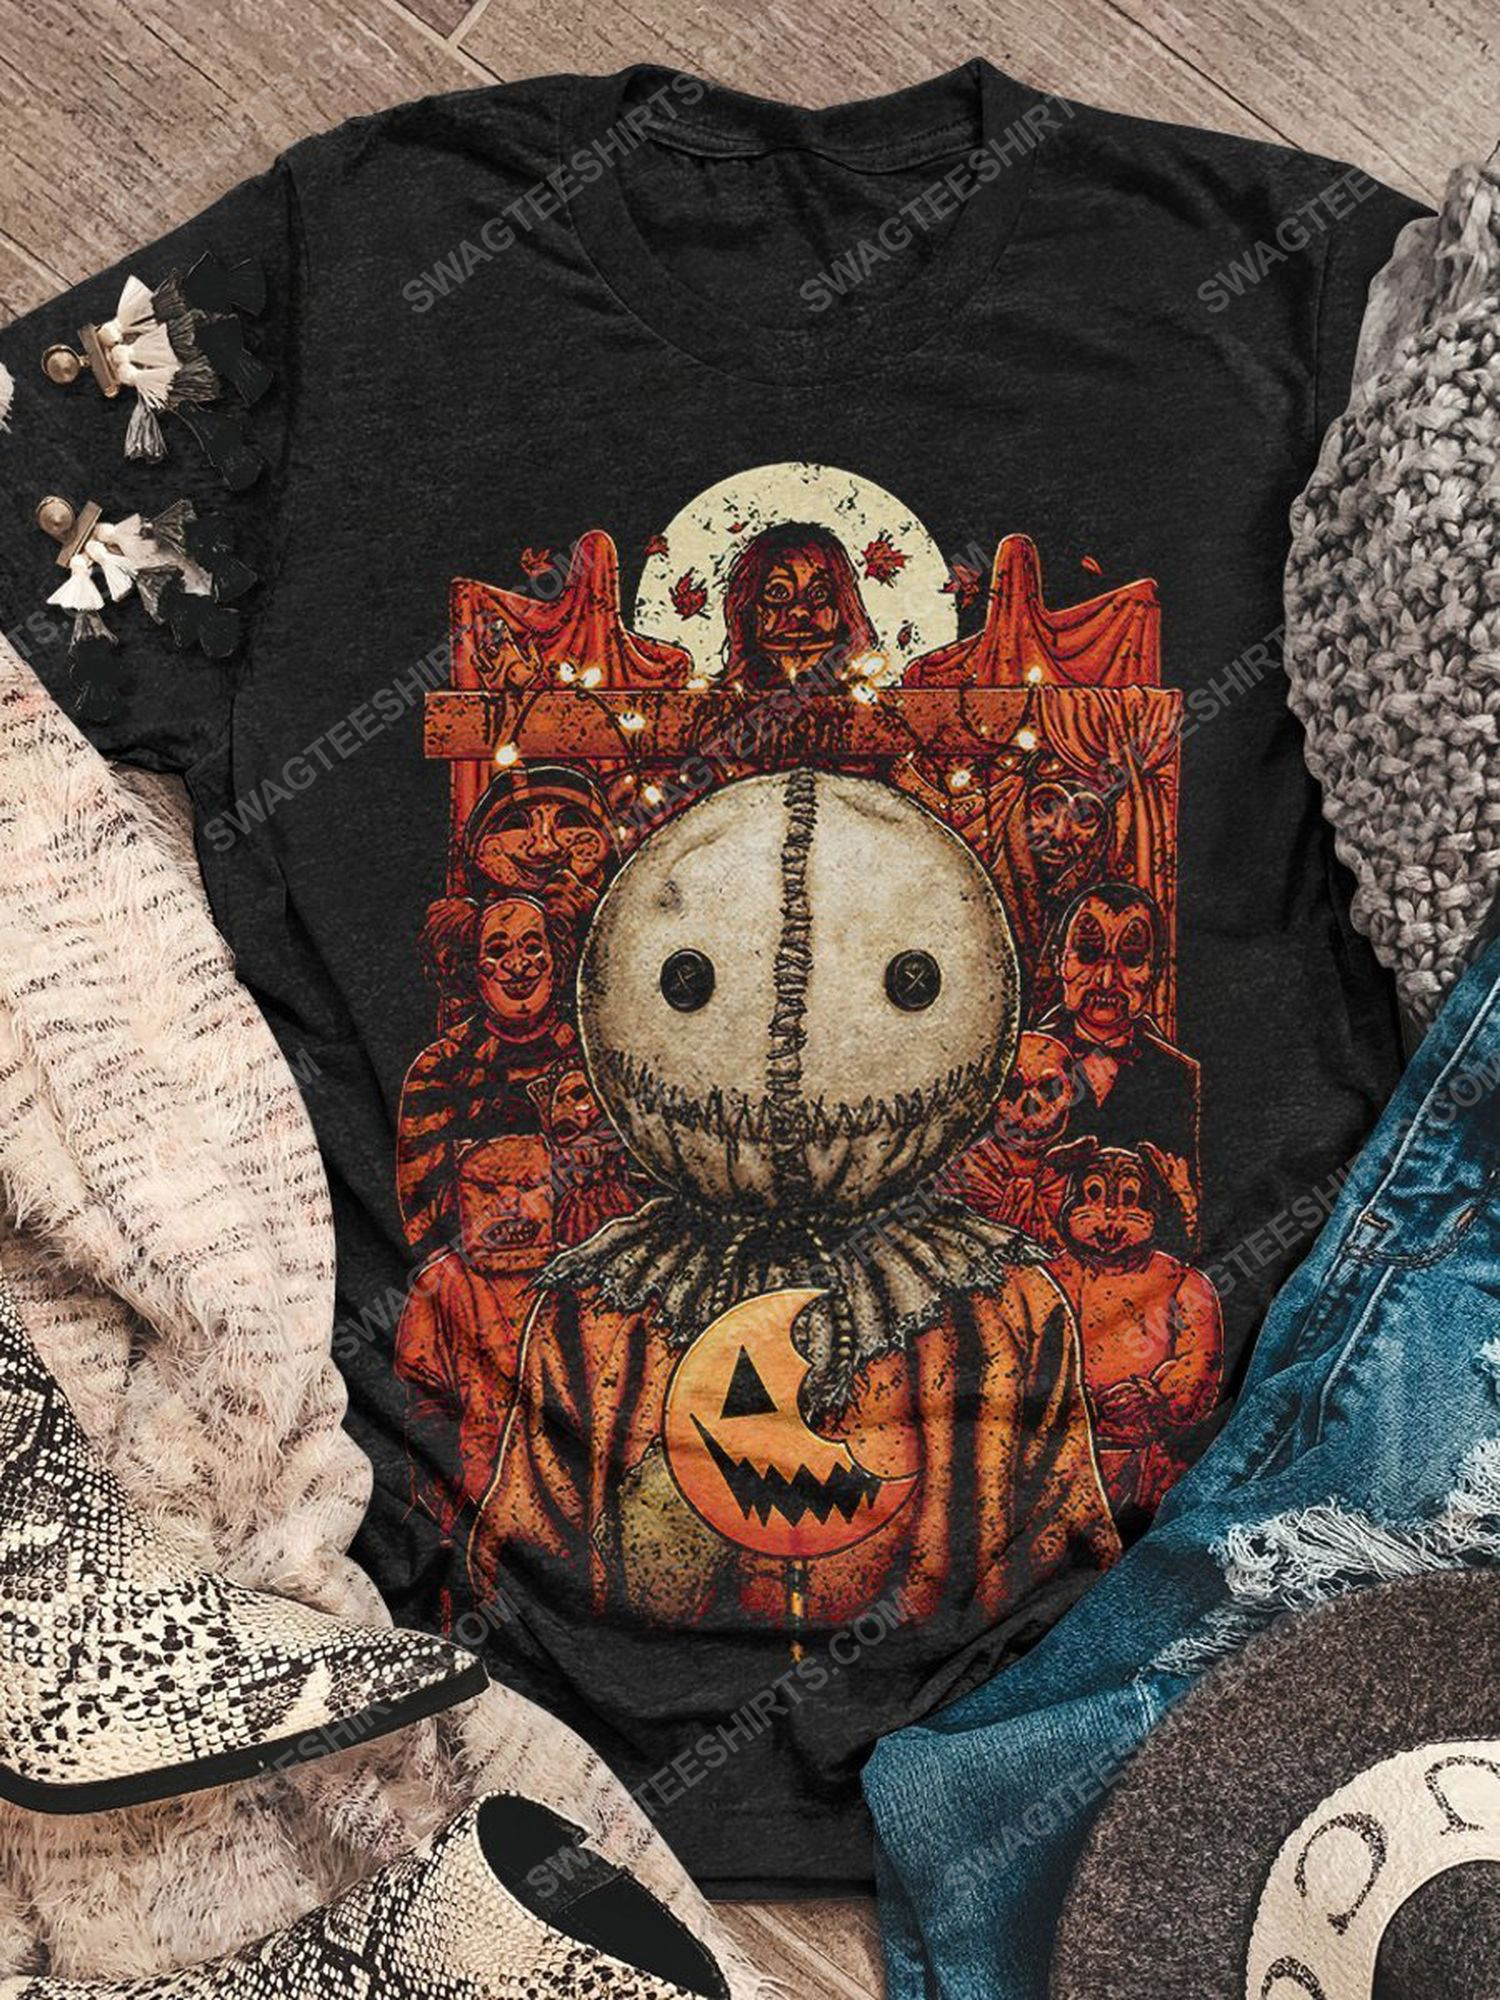 Halloween night and trick or treat scary movie shirt 1 - Copy